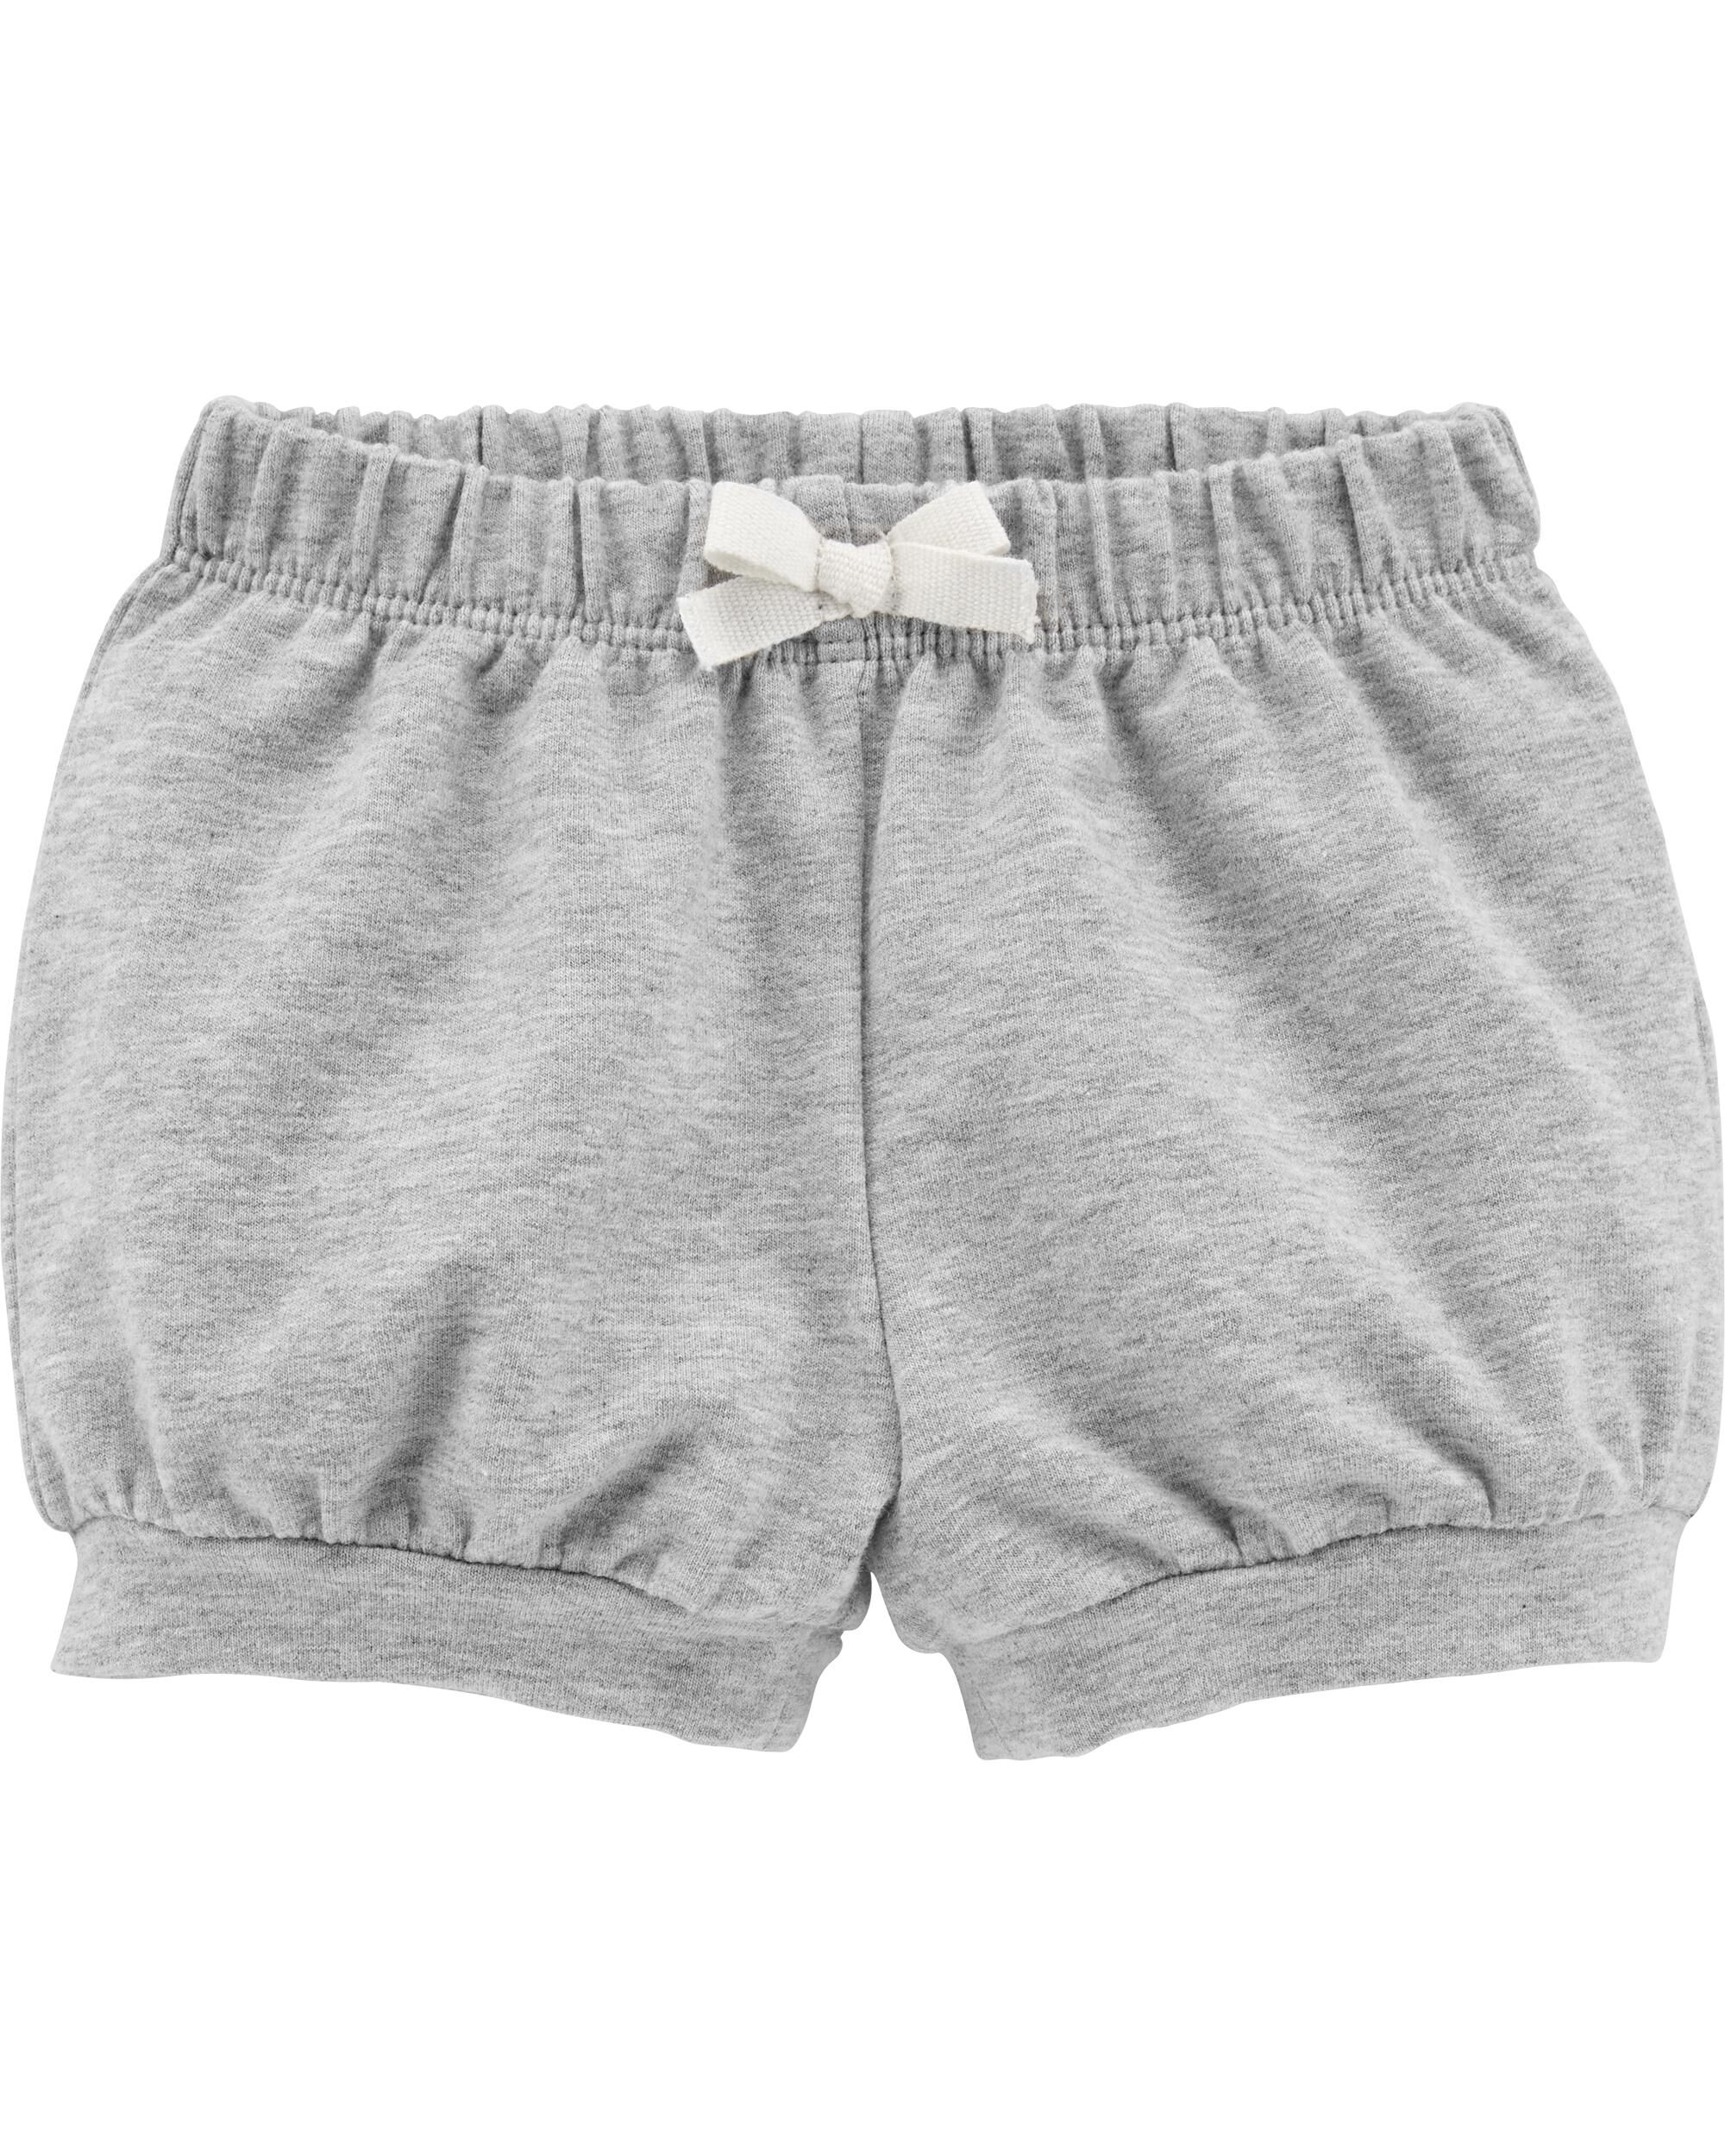 *Clearance*  Pull-On French Terry Bubble Shorts